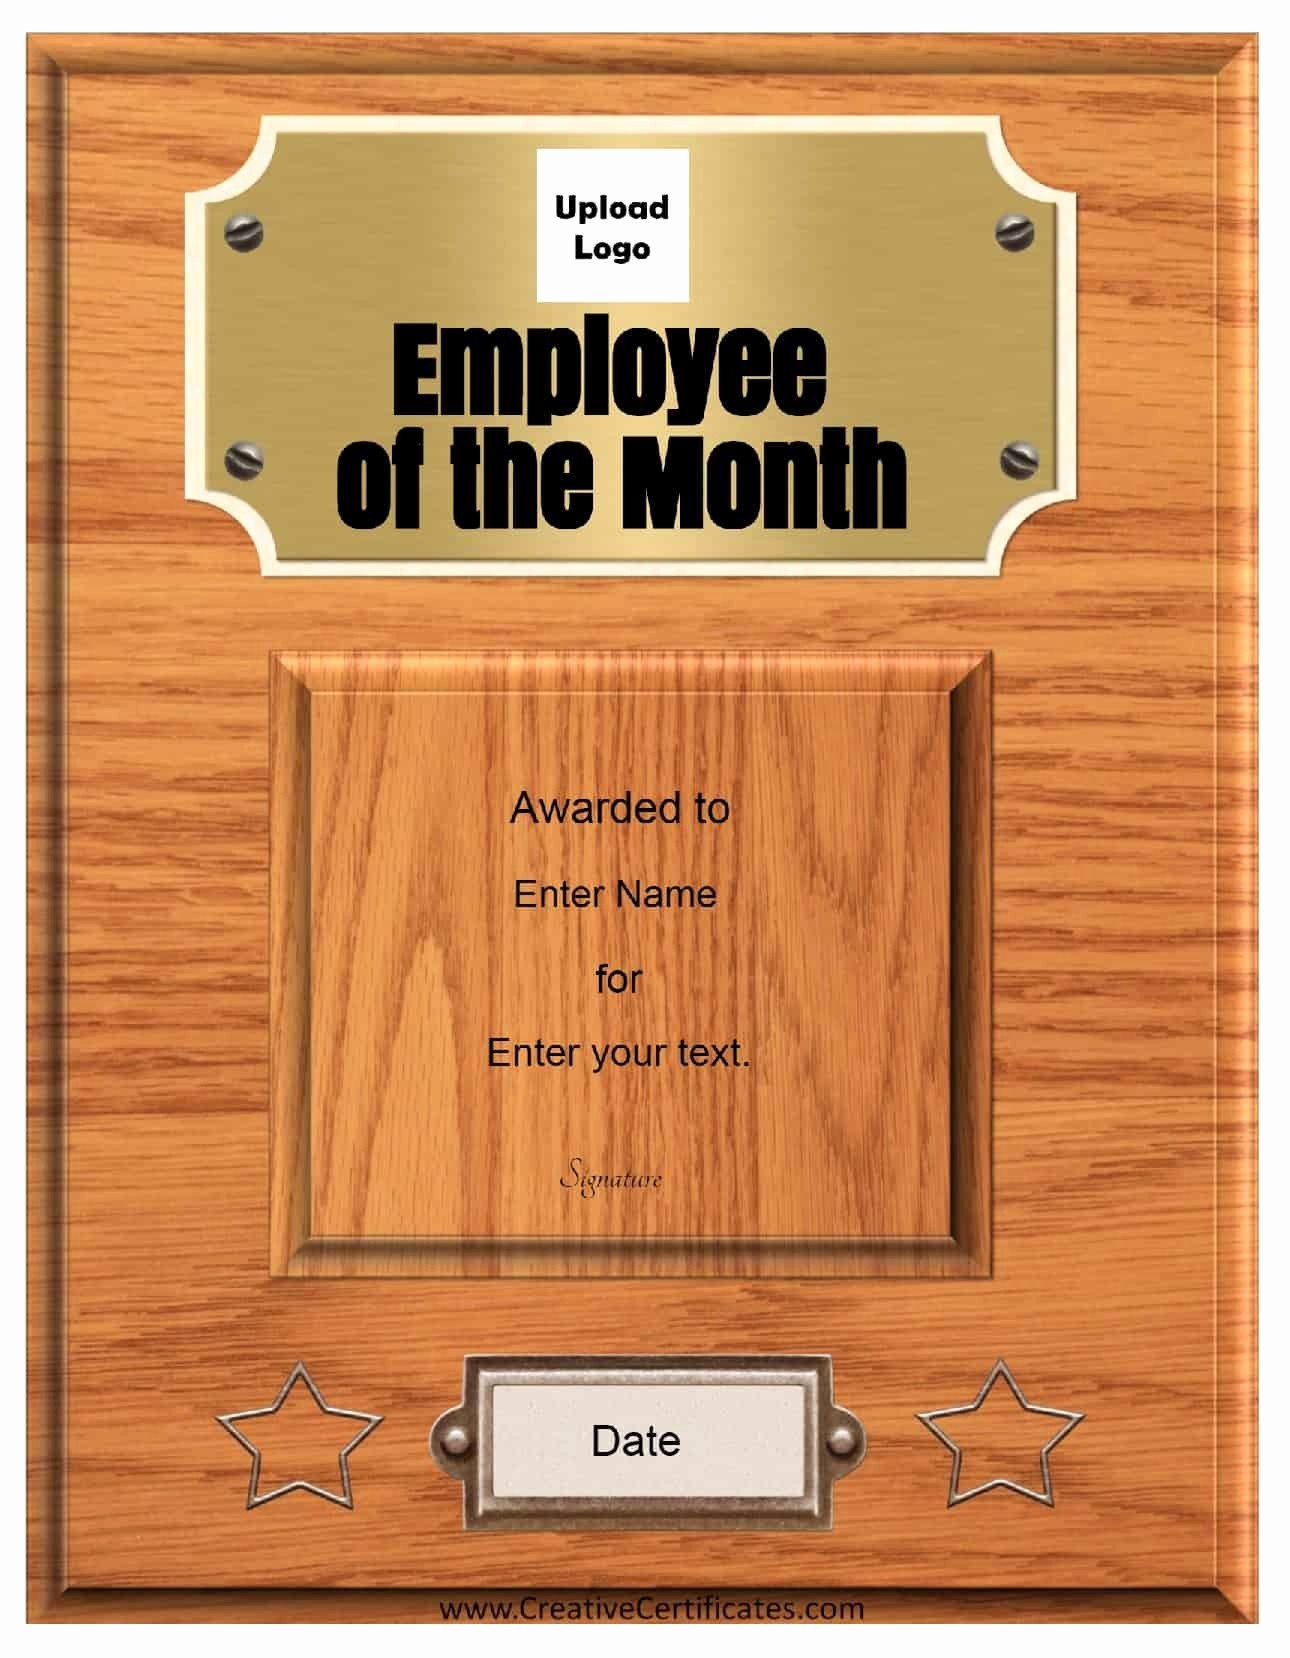 Employee Of the Month Free Lovely Free Custom Employee Of the Month Certificate